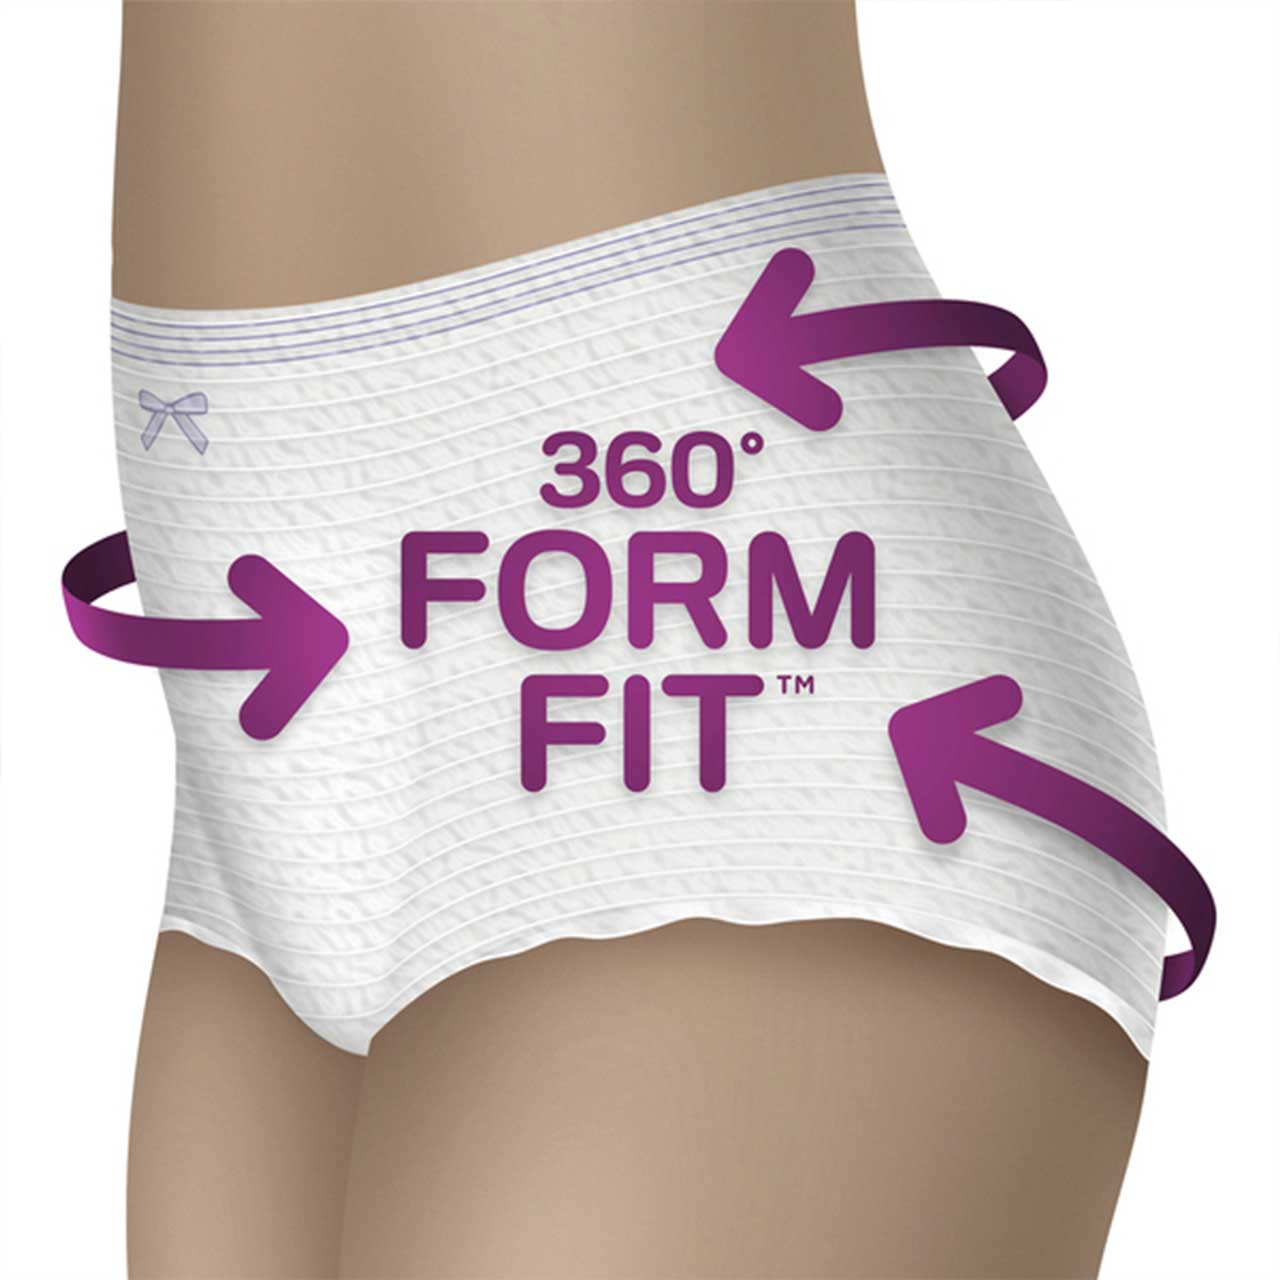 360 Form Fit